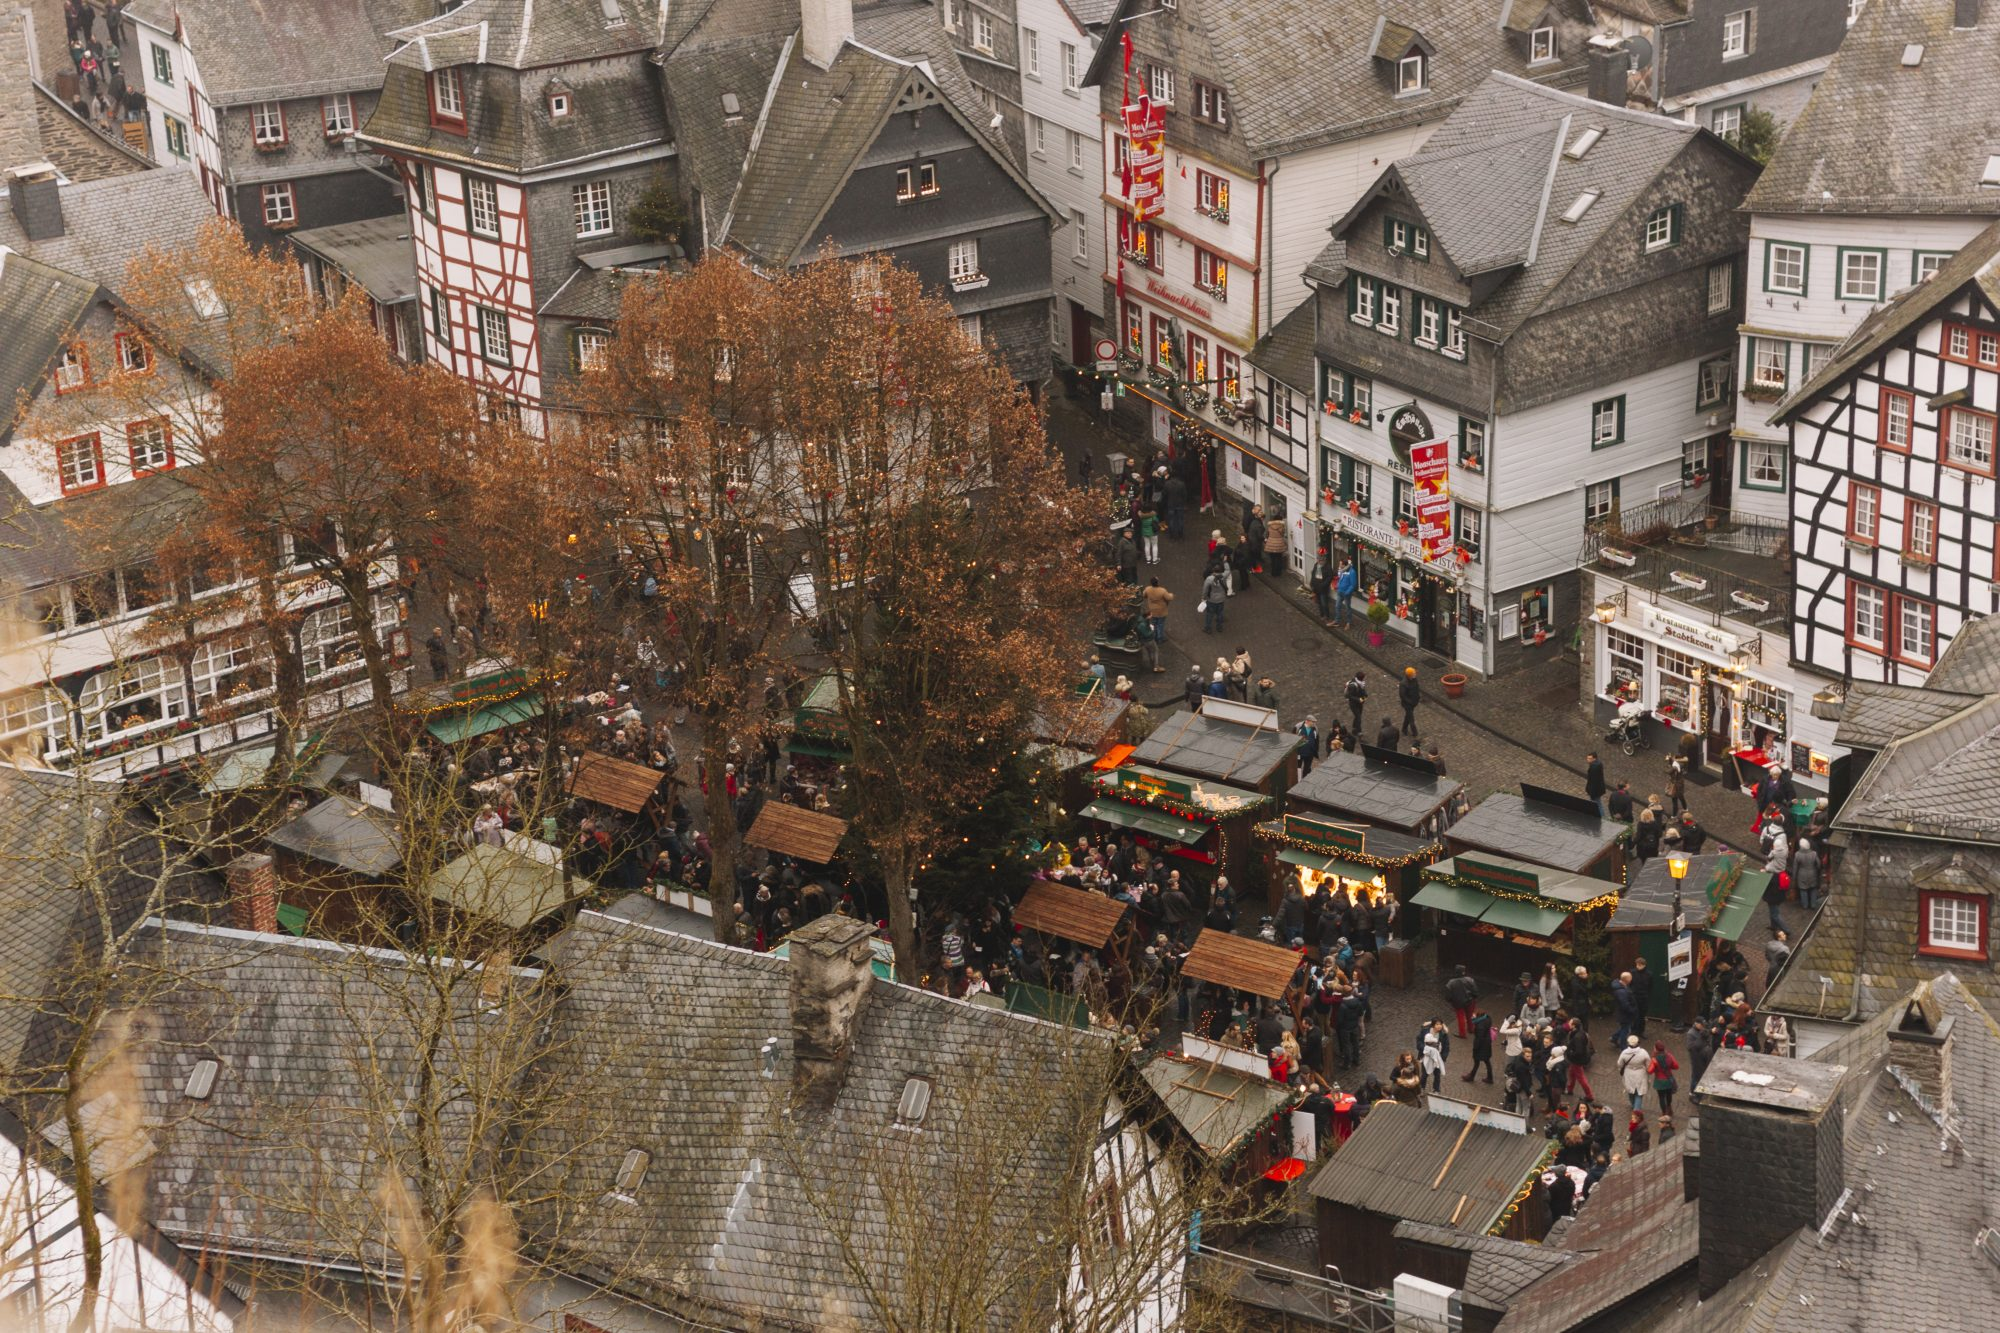 The Christmas market from up high